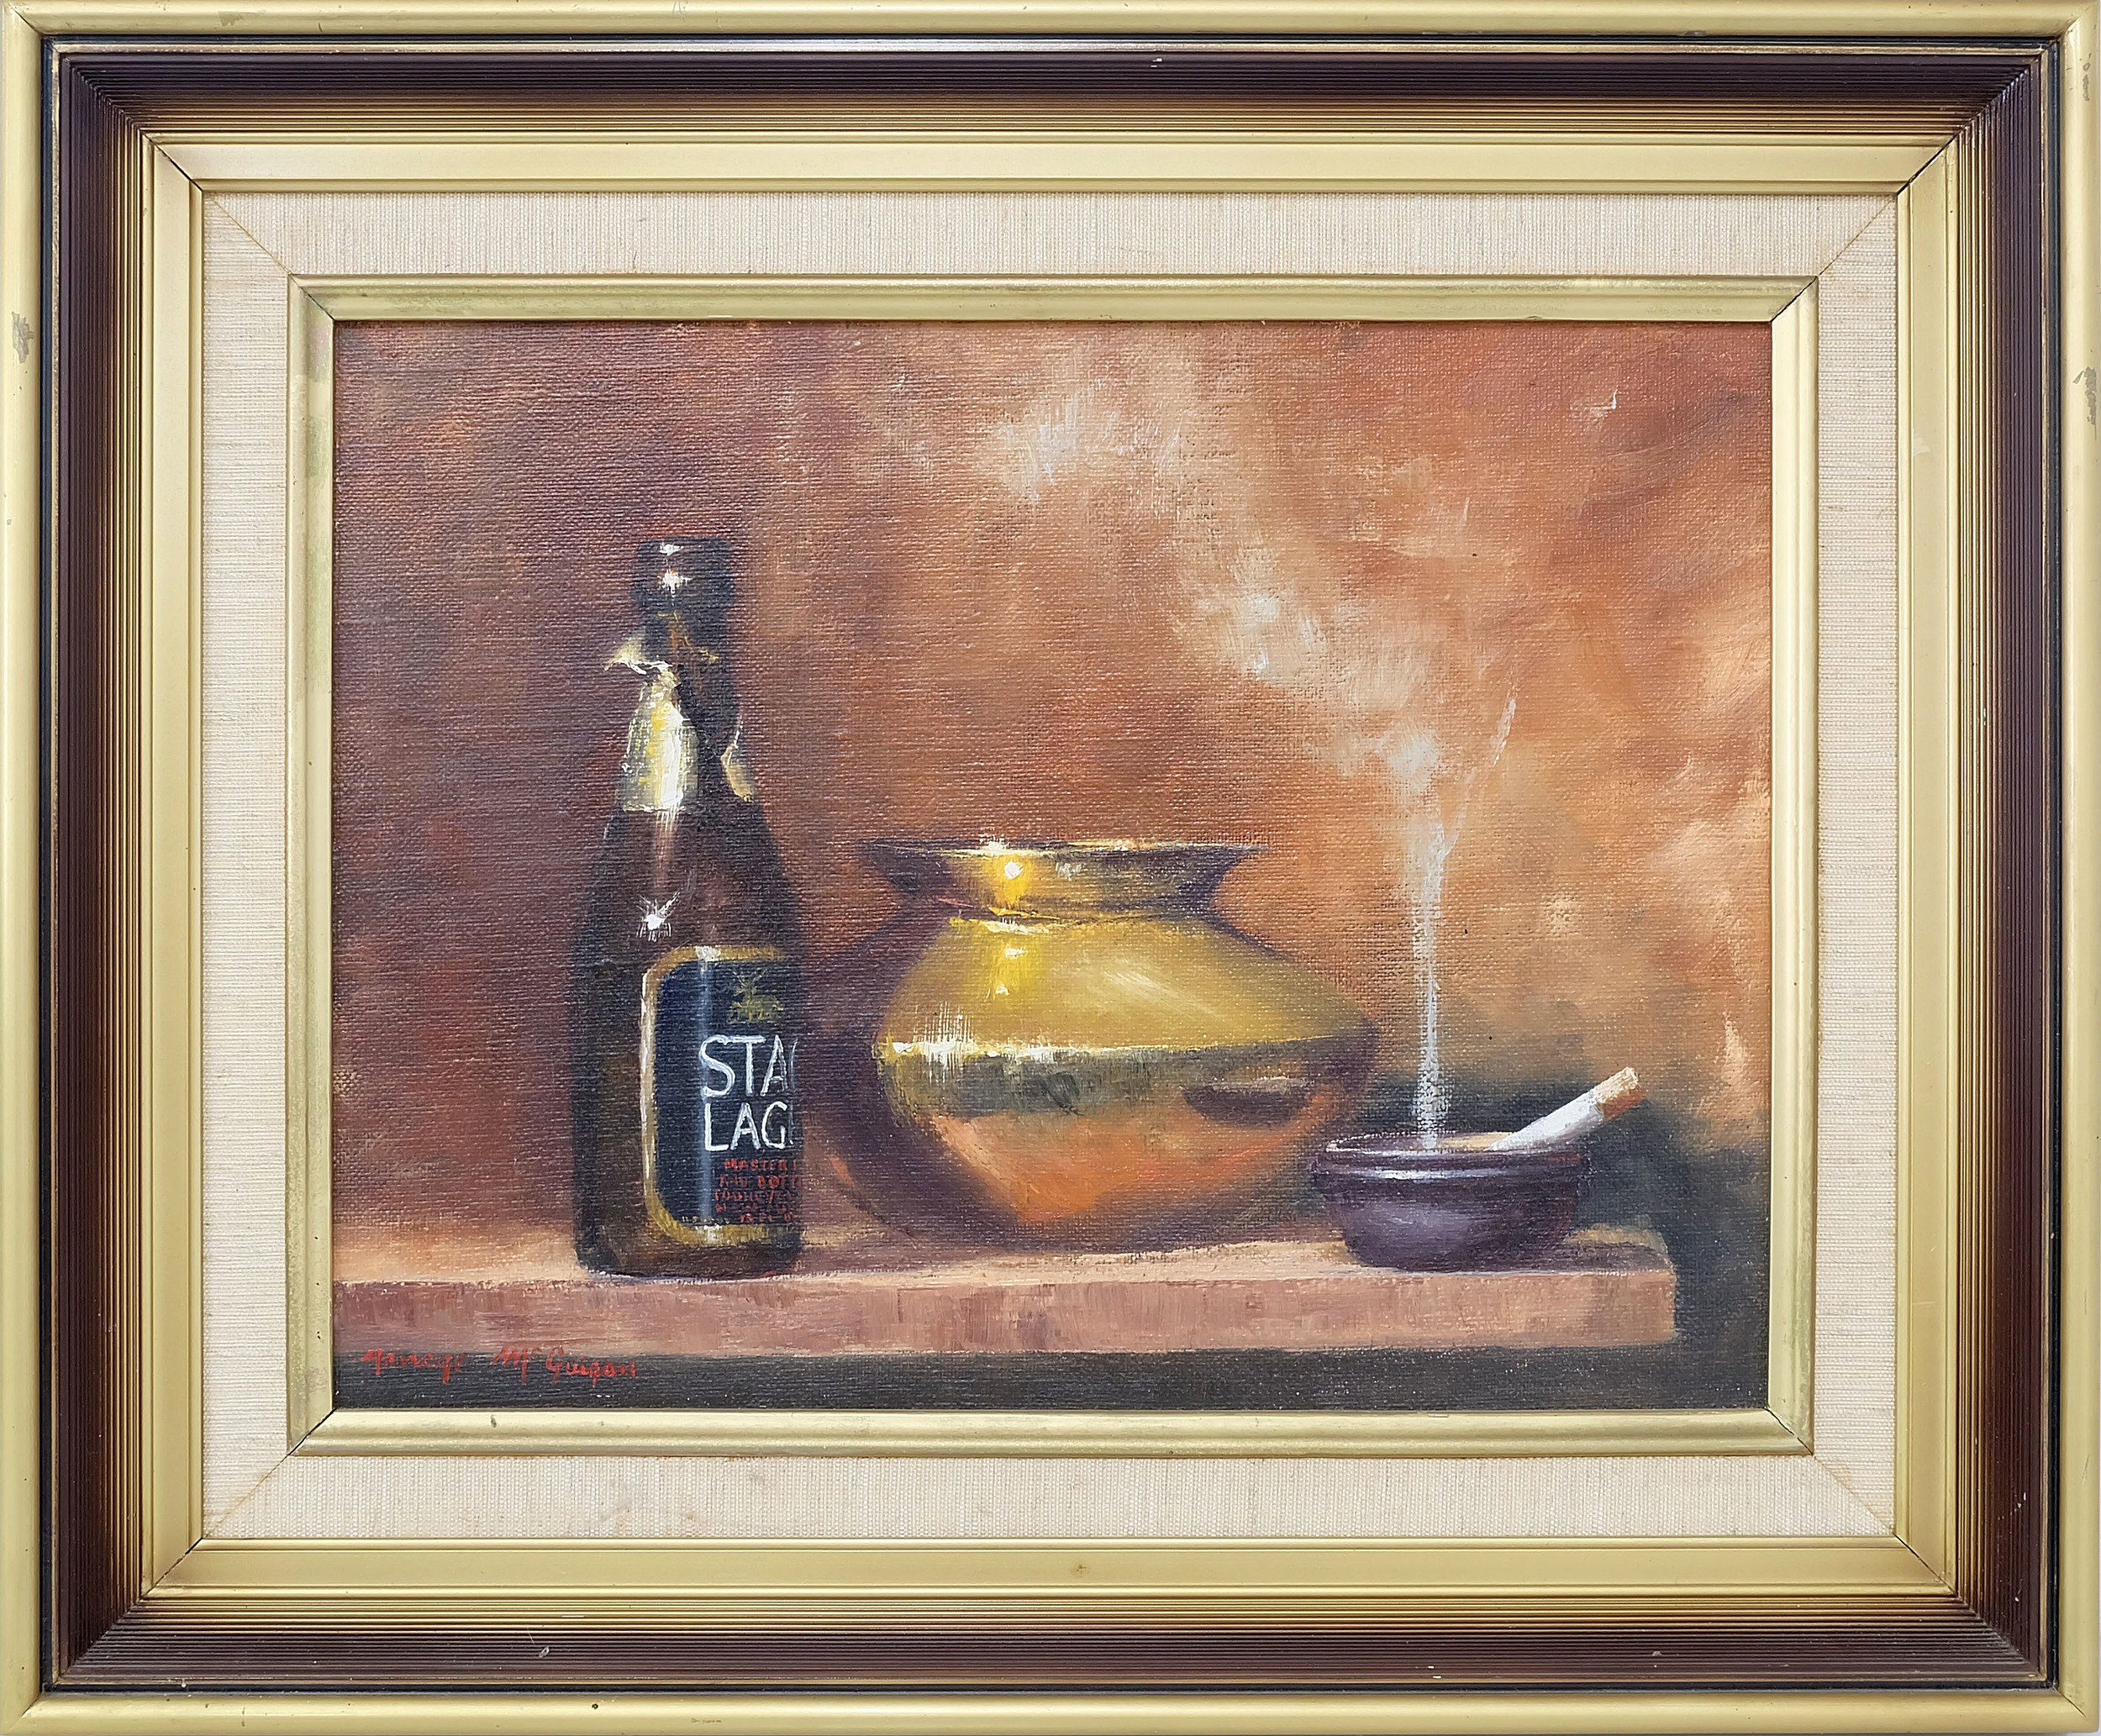 'Nancye McGuigan (1943-) Brass and Lager Oil on Canvas'